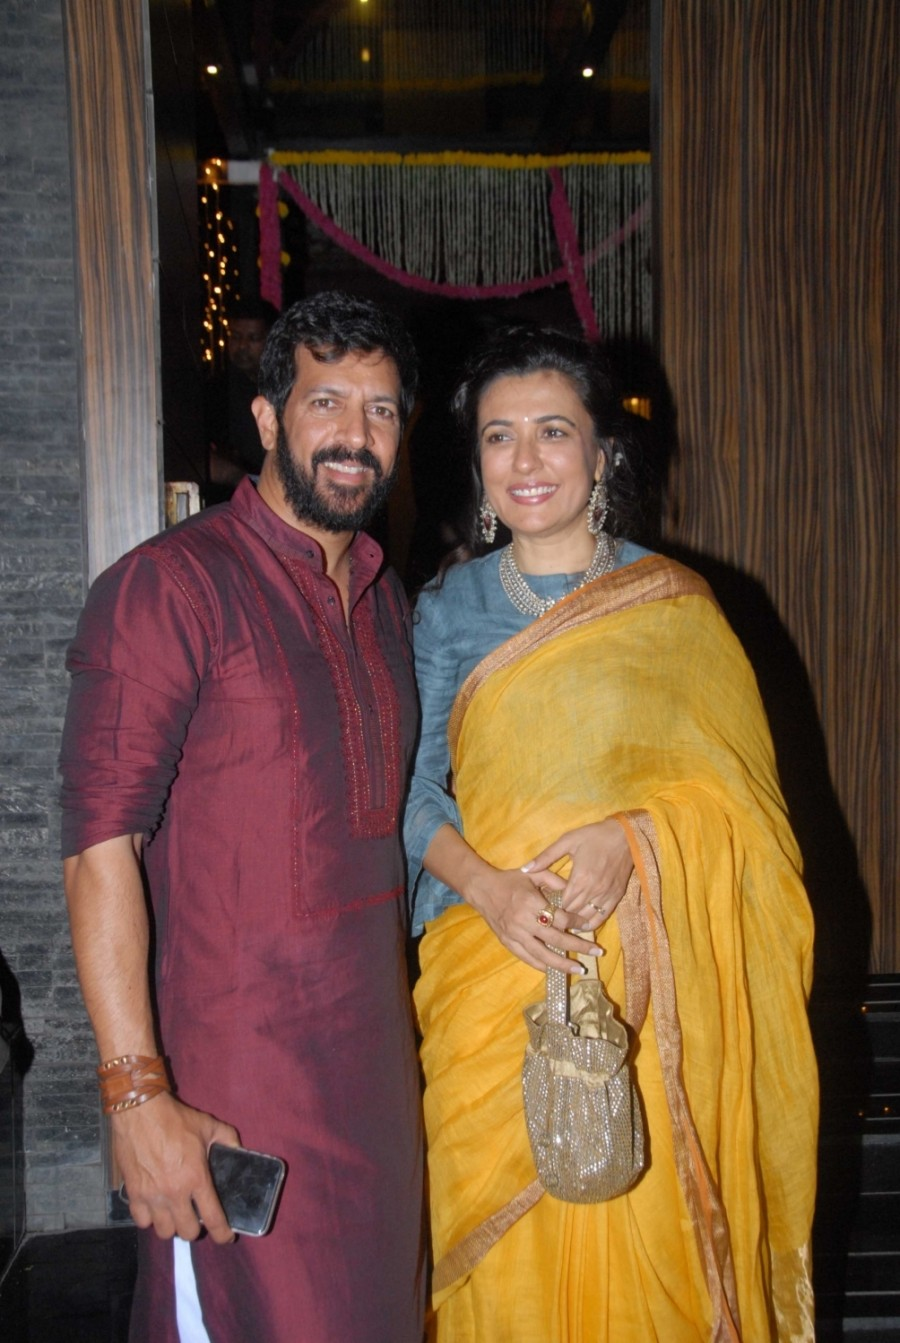 Aamir Khan's Diwali party 2016,Aamir Khan's Diwali party,Aamir Khan Diwali party 2016,Aamir Khan Diwali party,Sunny Leone,Vidya Balan,Sanjay Dutt,Aamir Khan Diwali party pics,Aamir Khan Diwali party images,Aamir Khan Diwali party photos,Aamir Kh